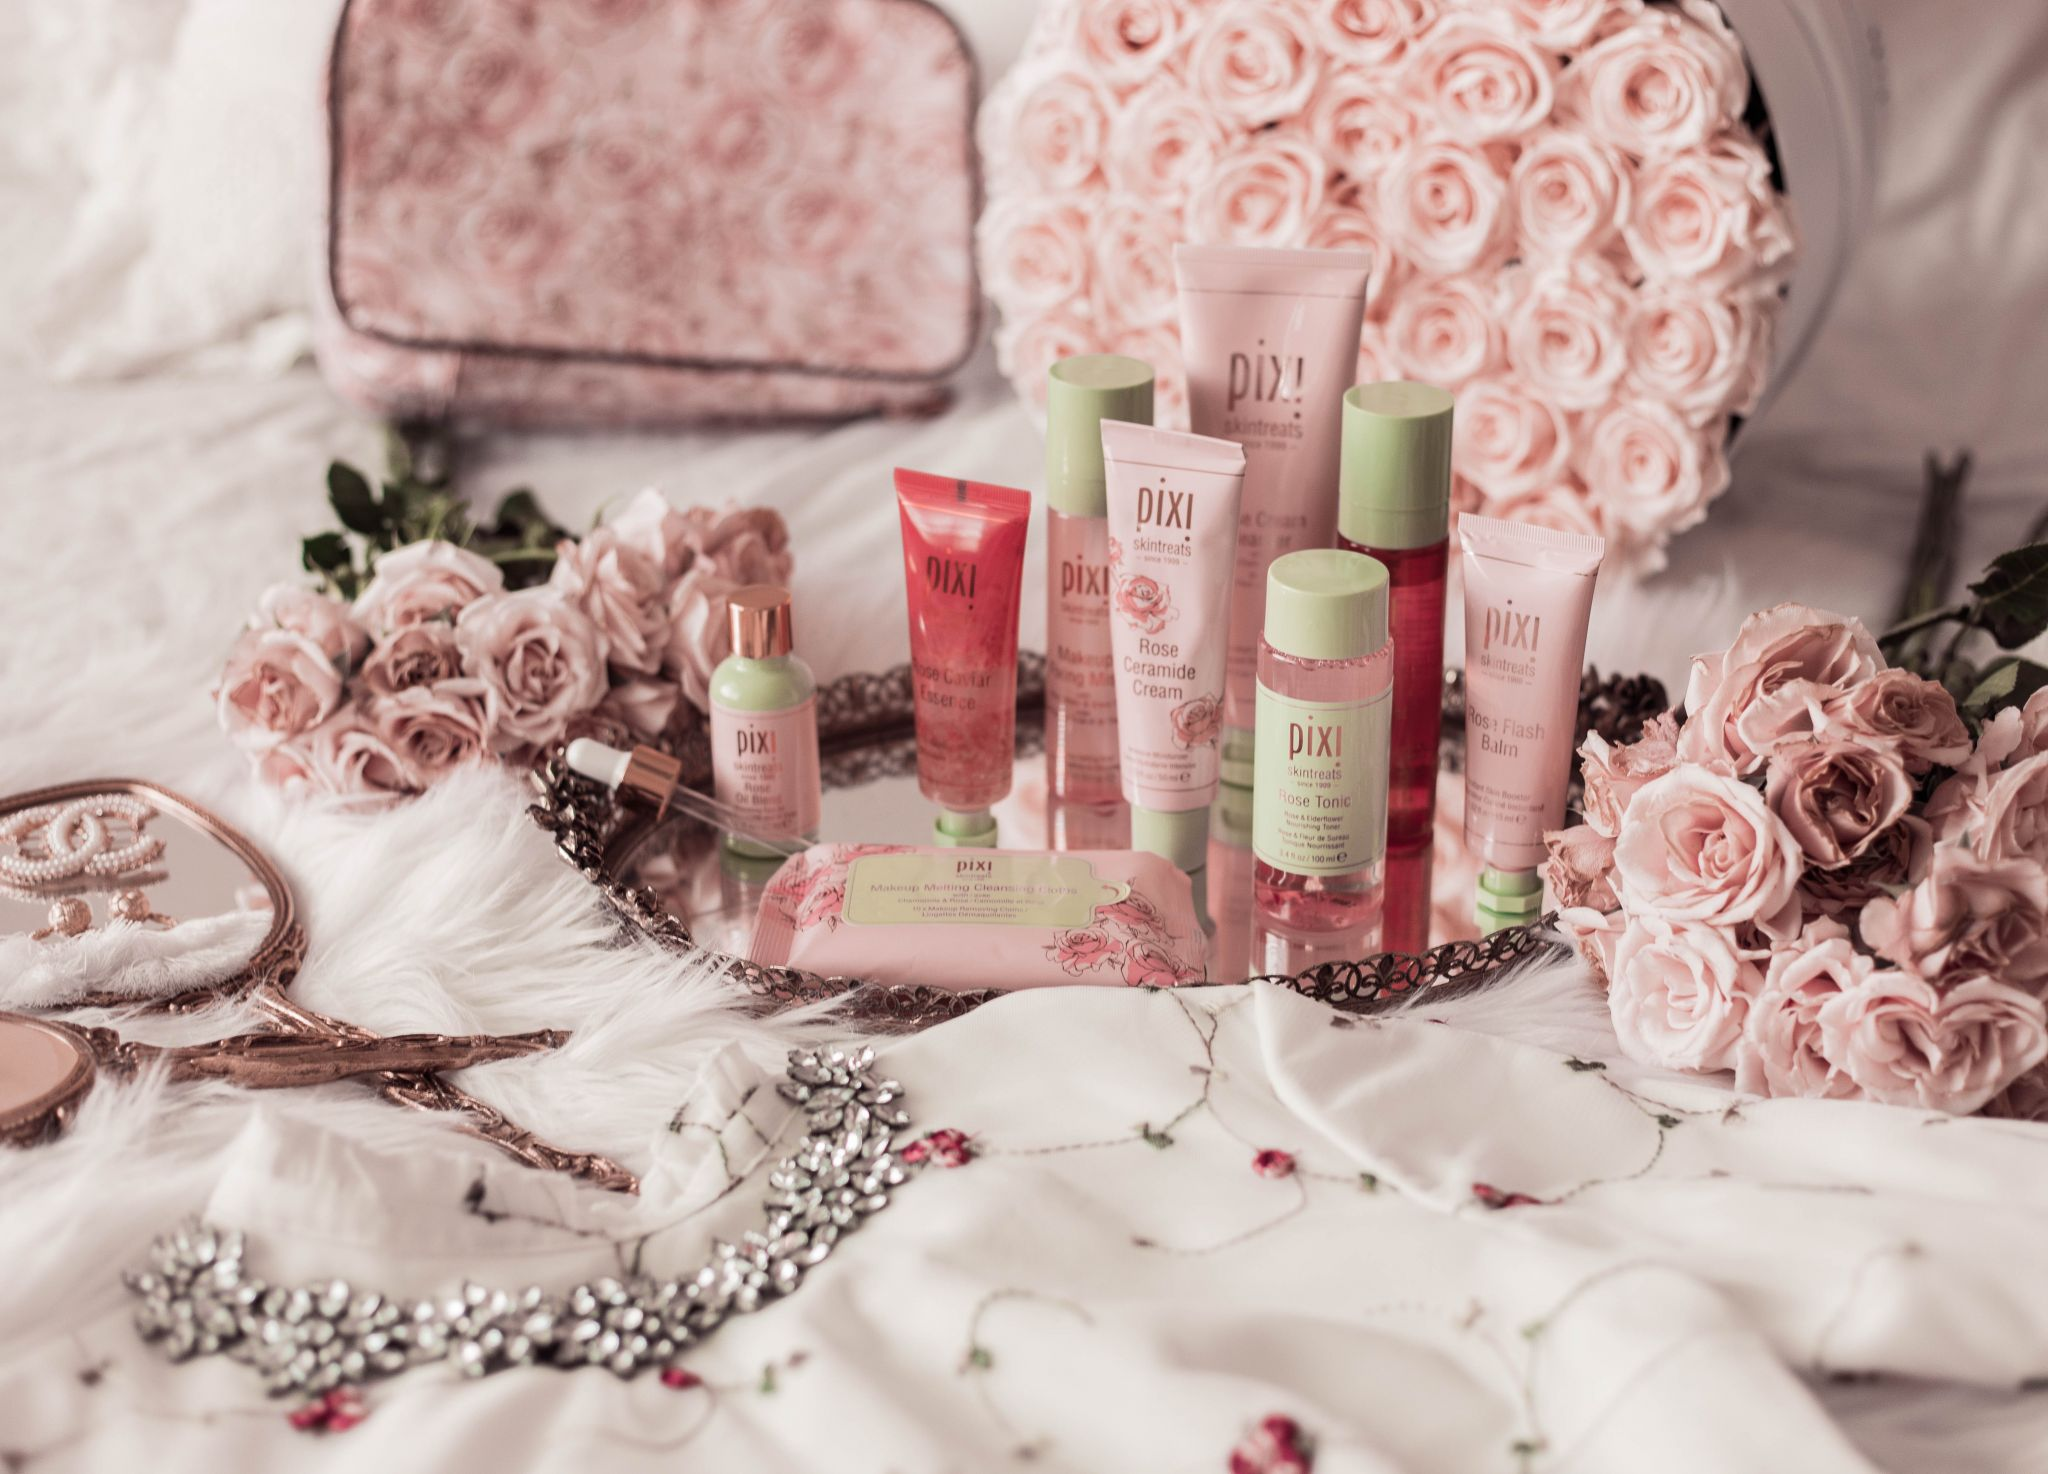 rose scented beauty products